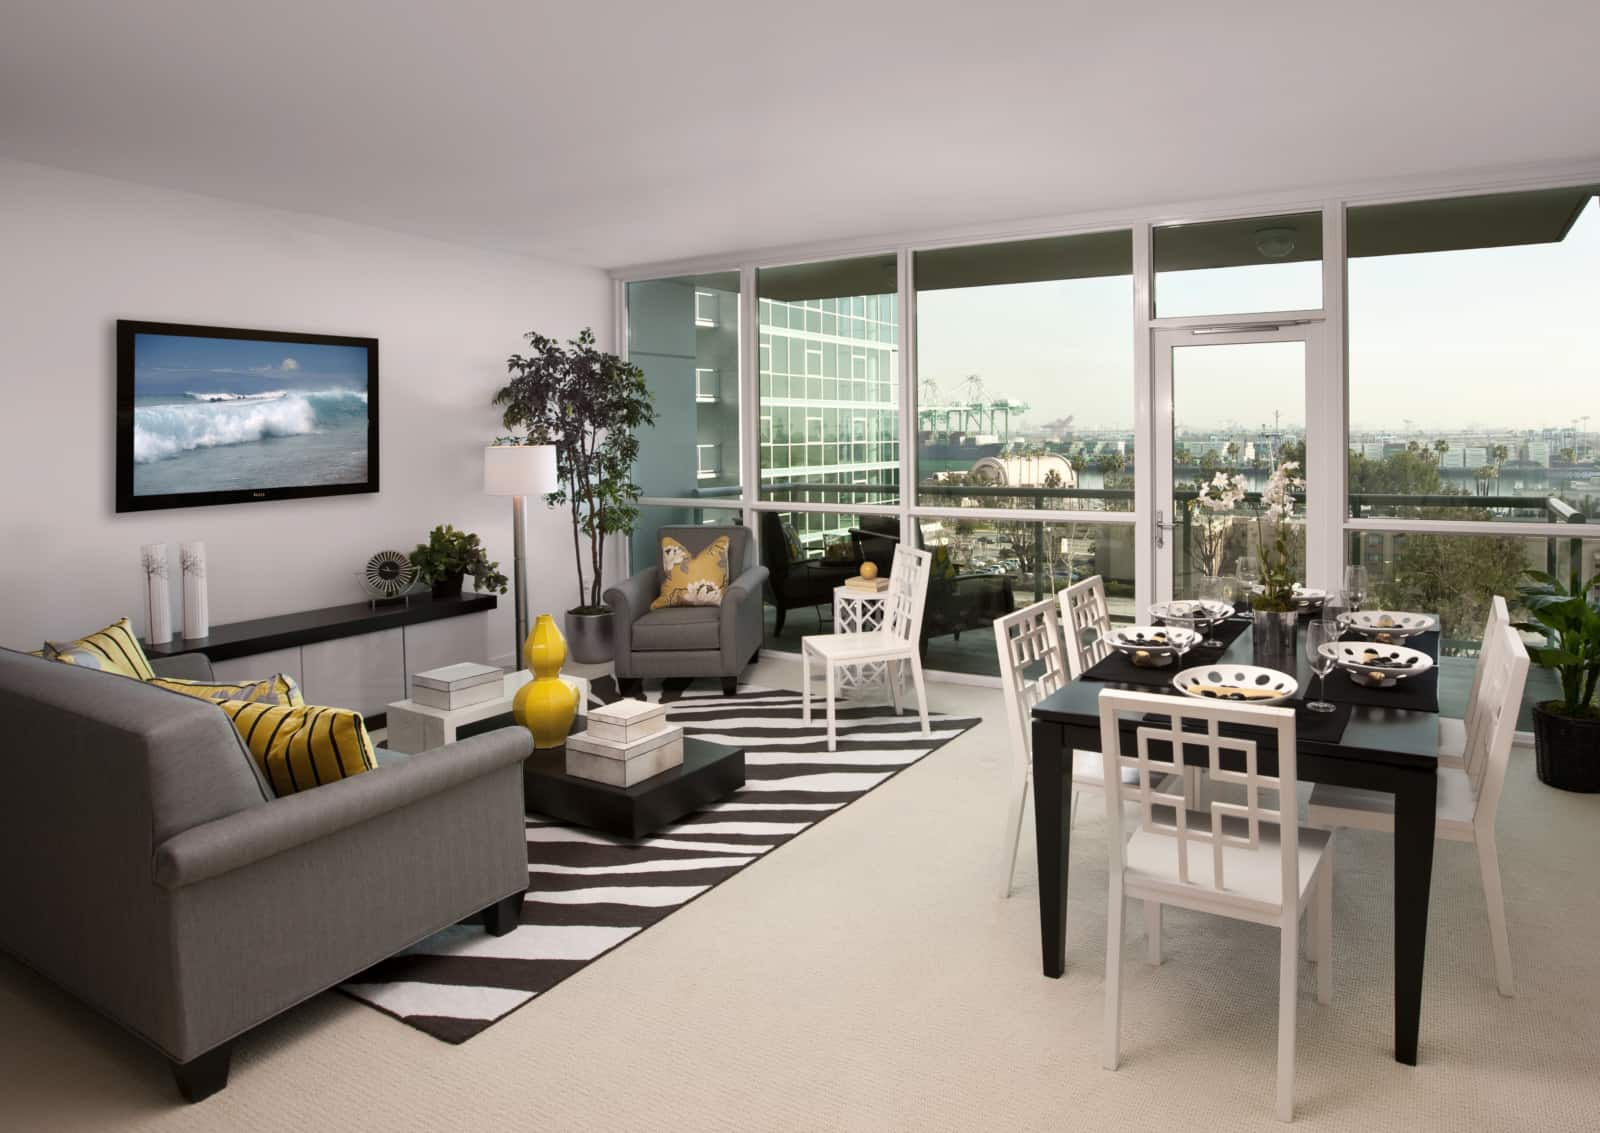 Interior of modern living room and dining area in a high-rise apartment.